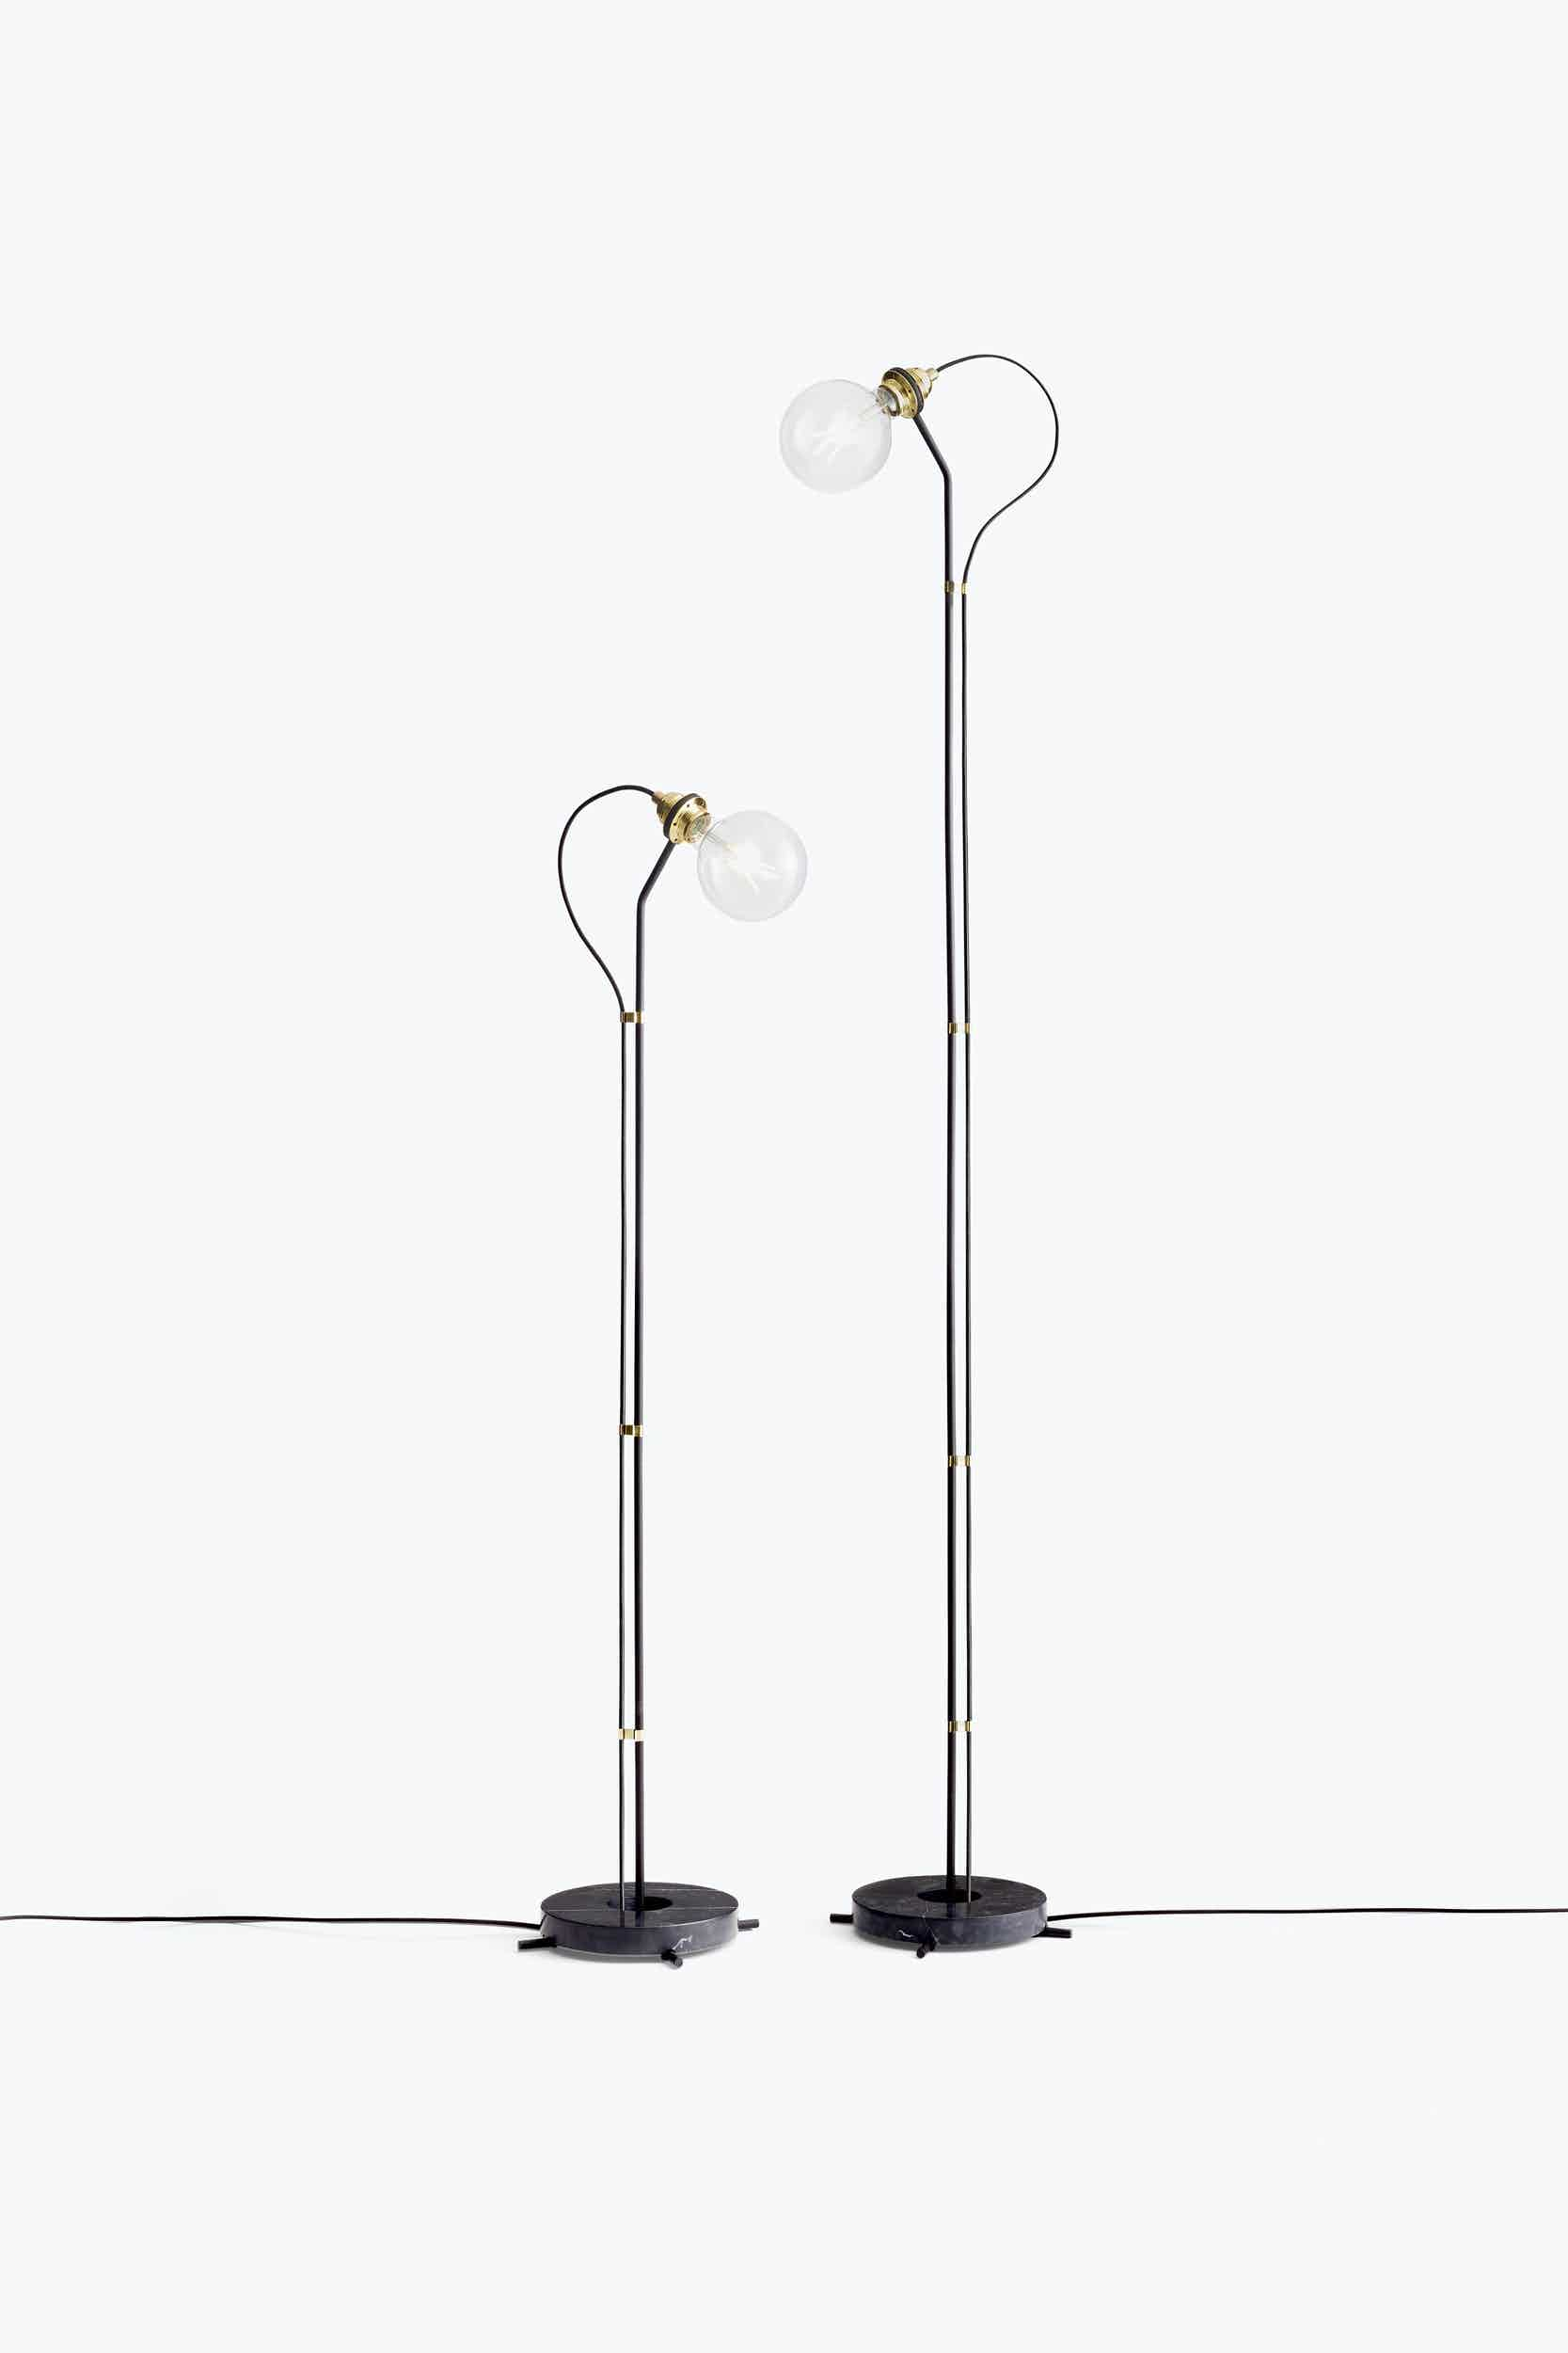 New works furniture five floor lamp black duo haute living